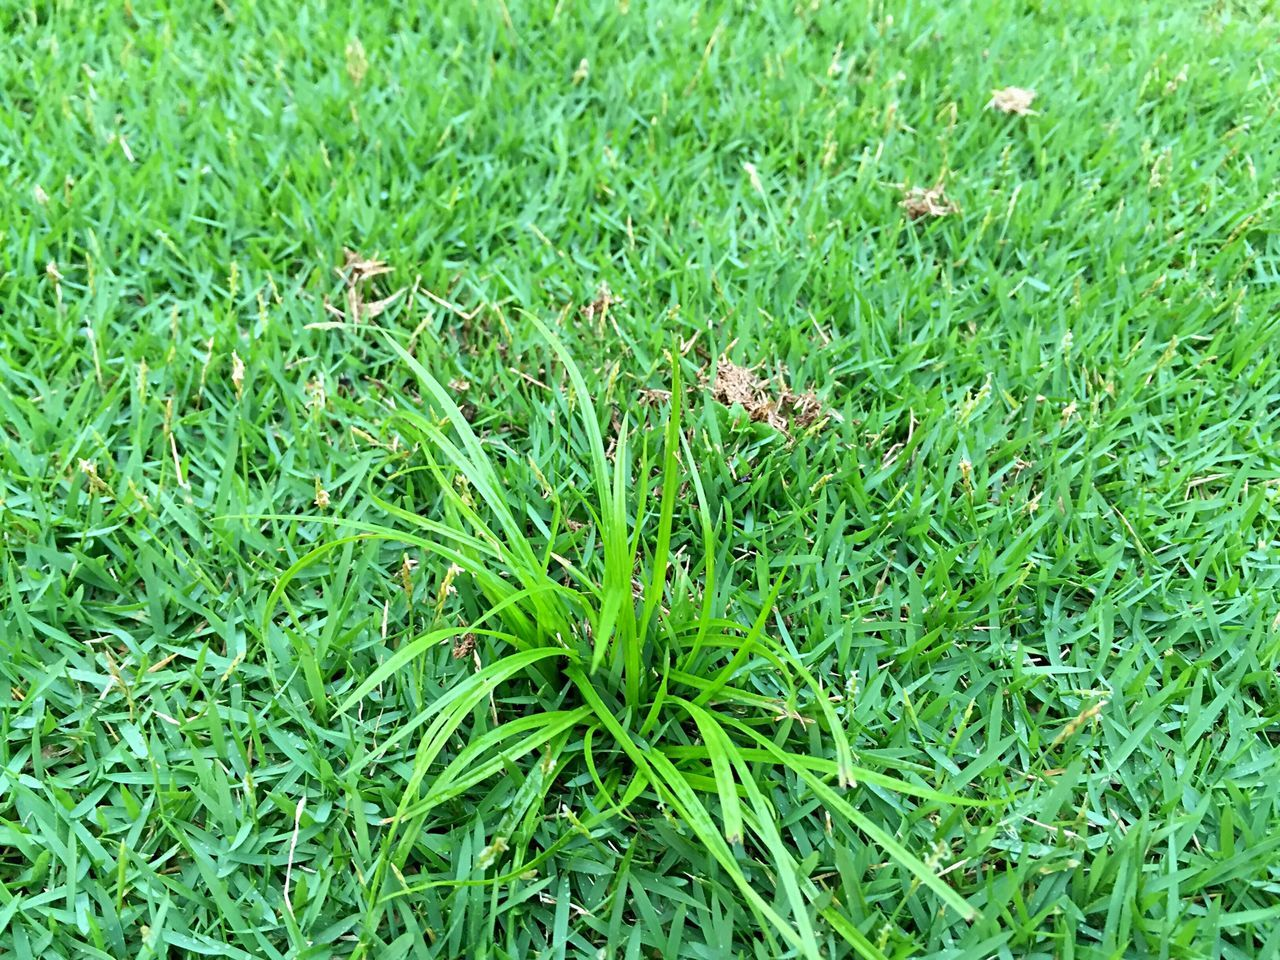 grass, green color, field, high angle view, growth, nature, no people, outdoors, full frame, day, plant, close-up